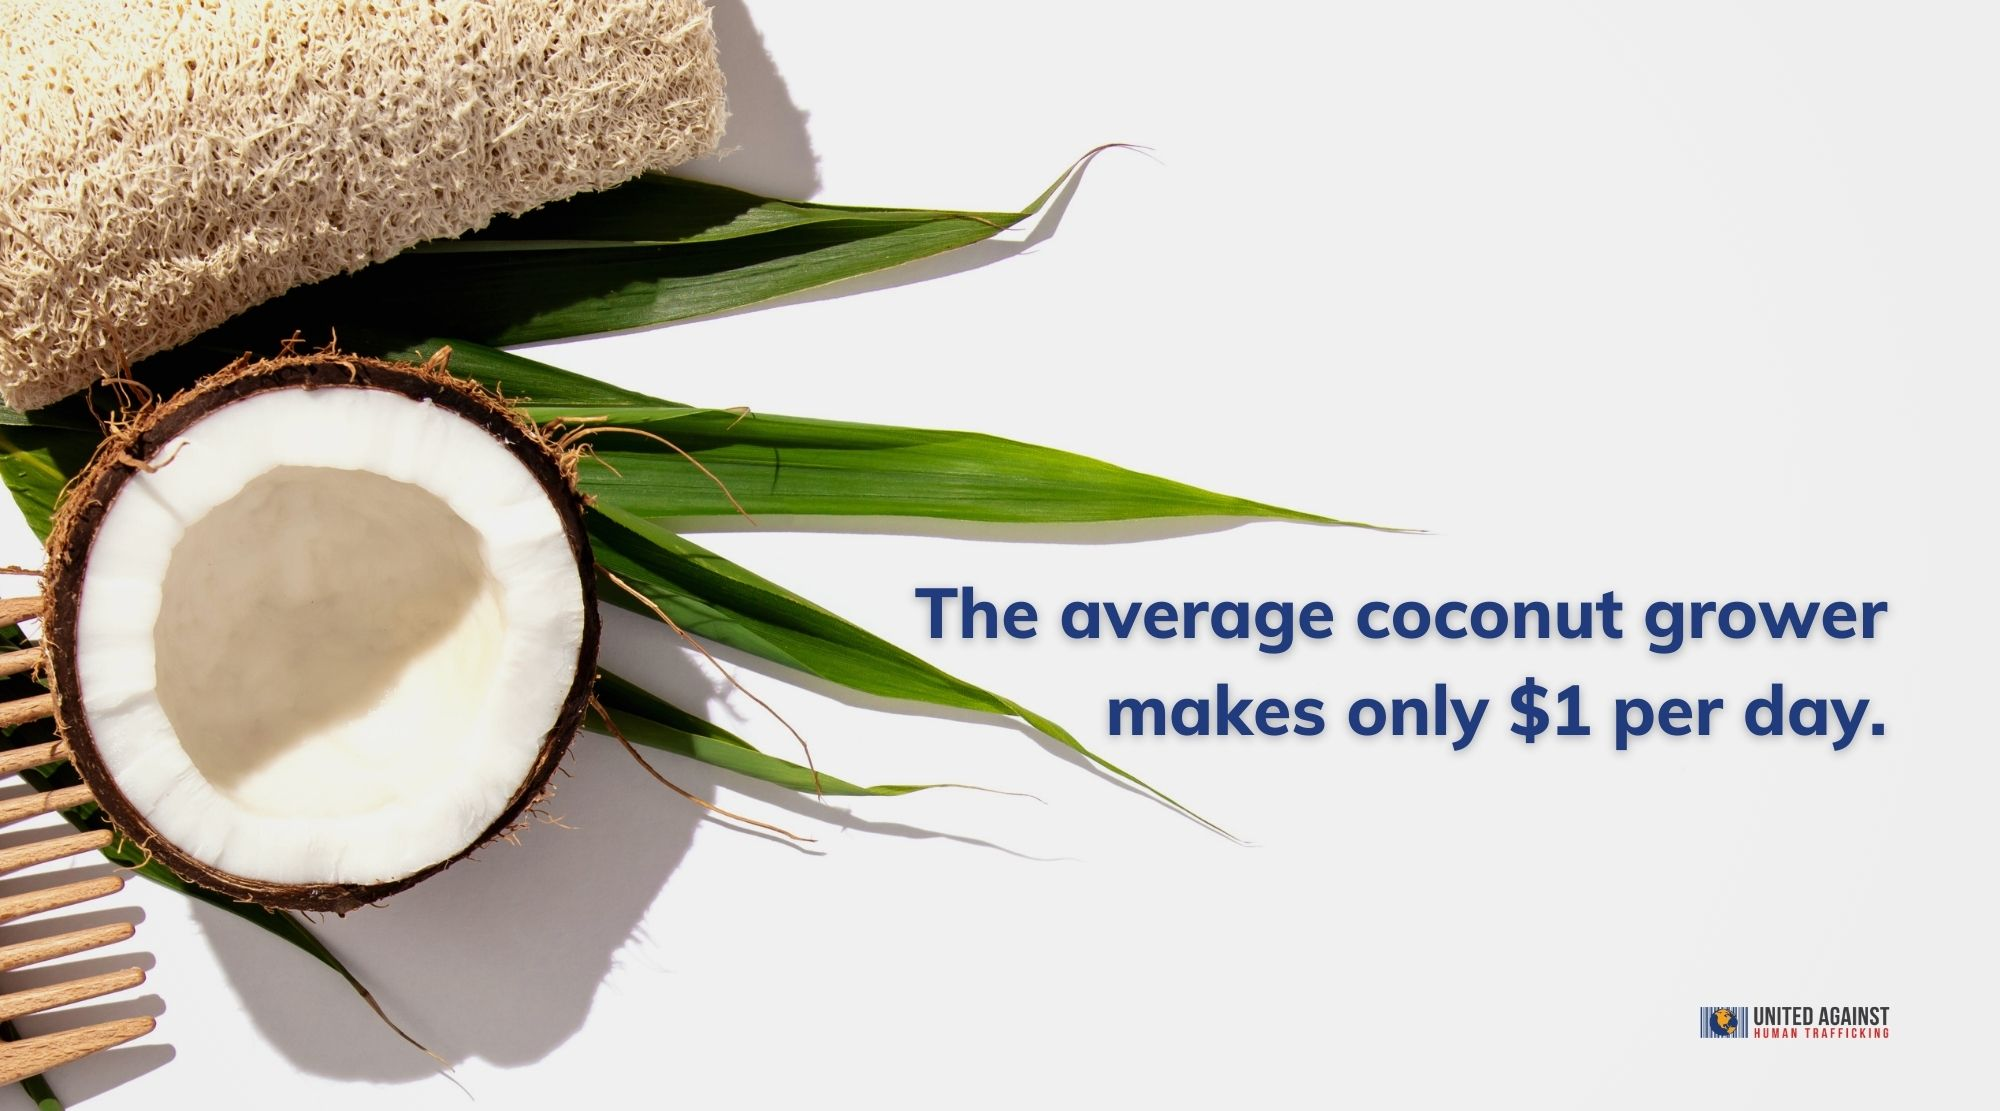 The average coconut grower makes only $1 per day